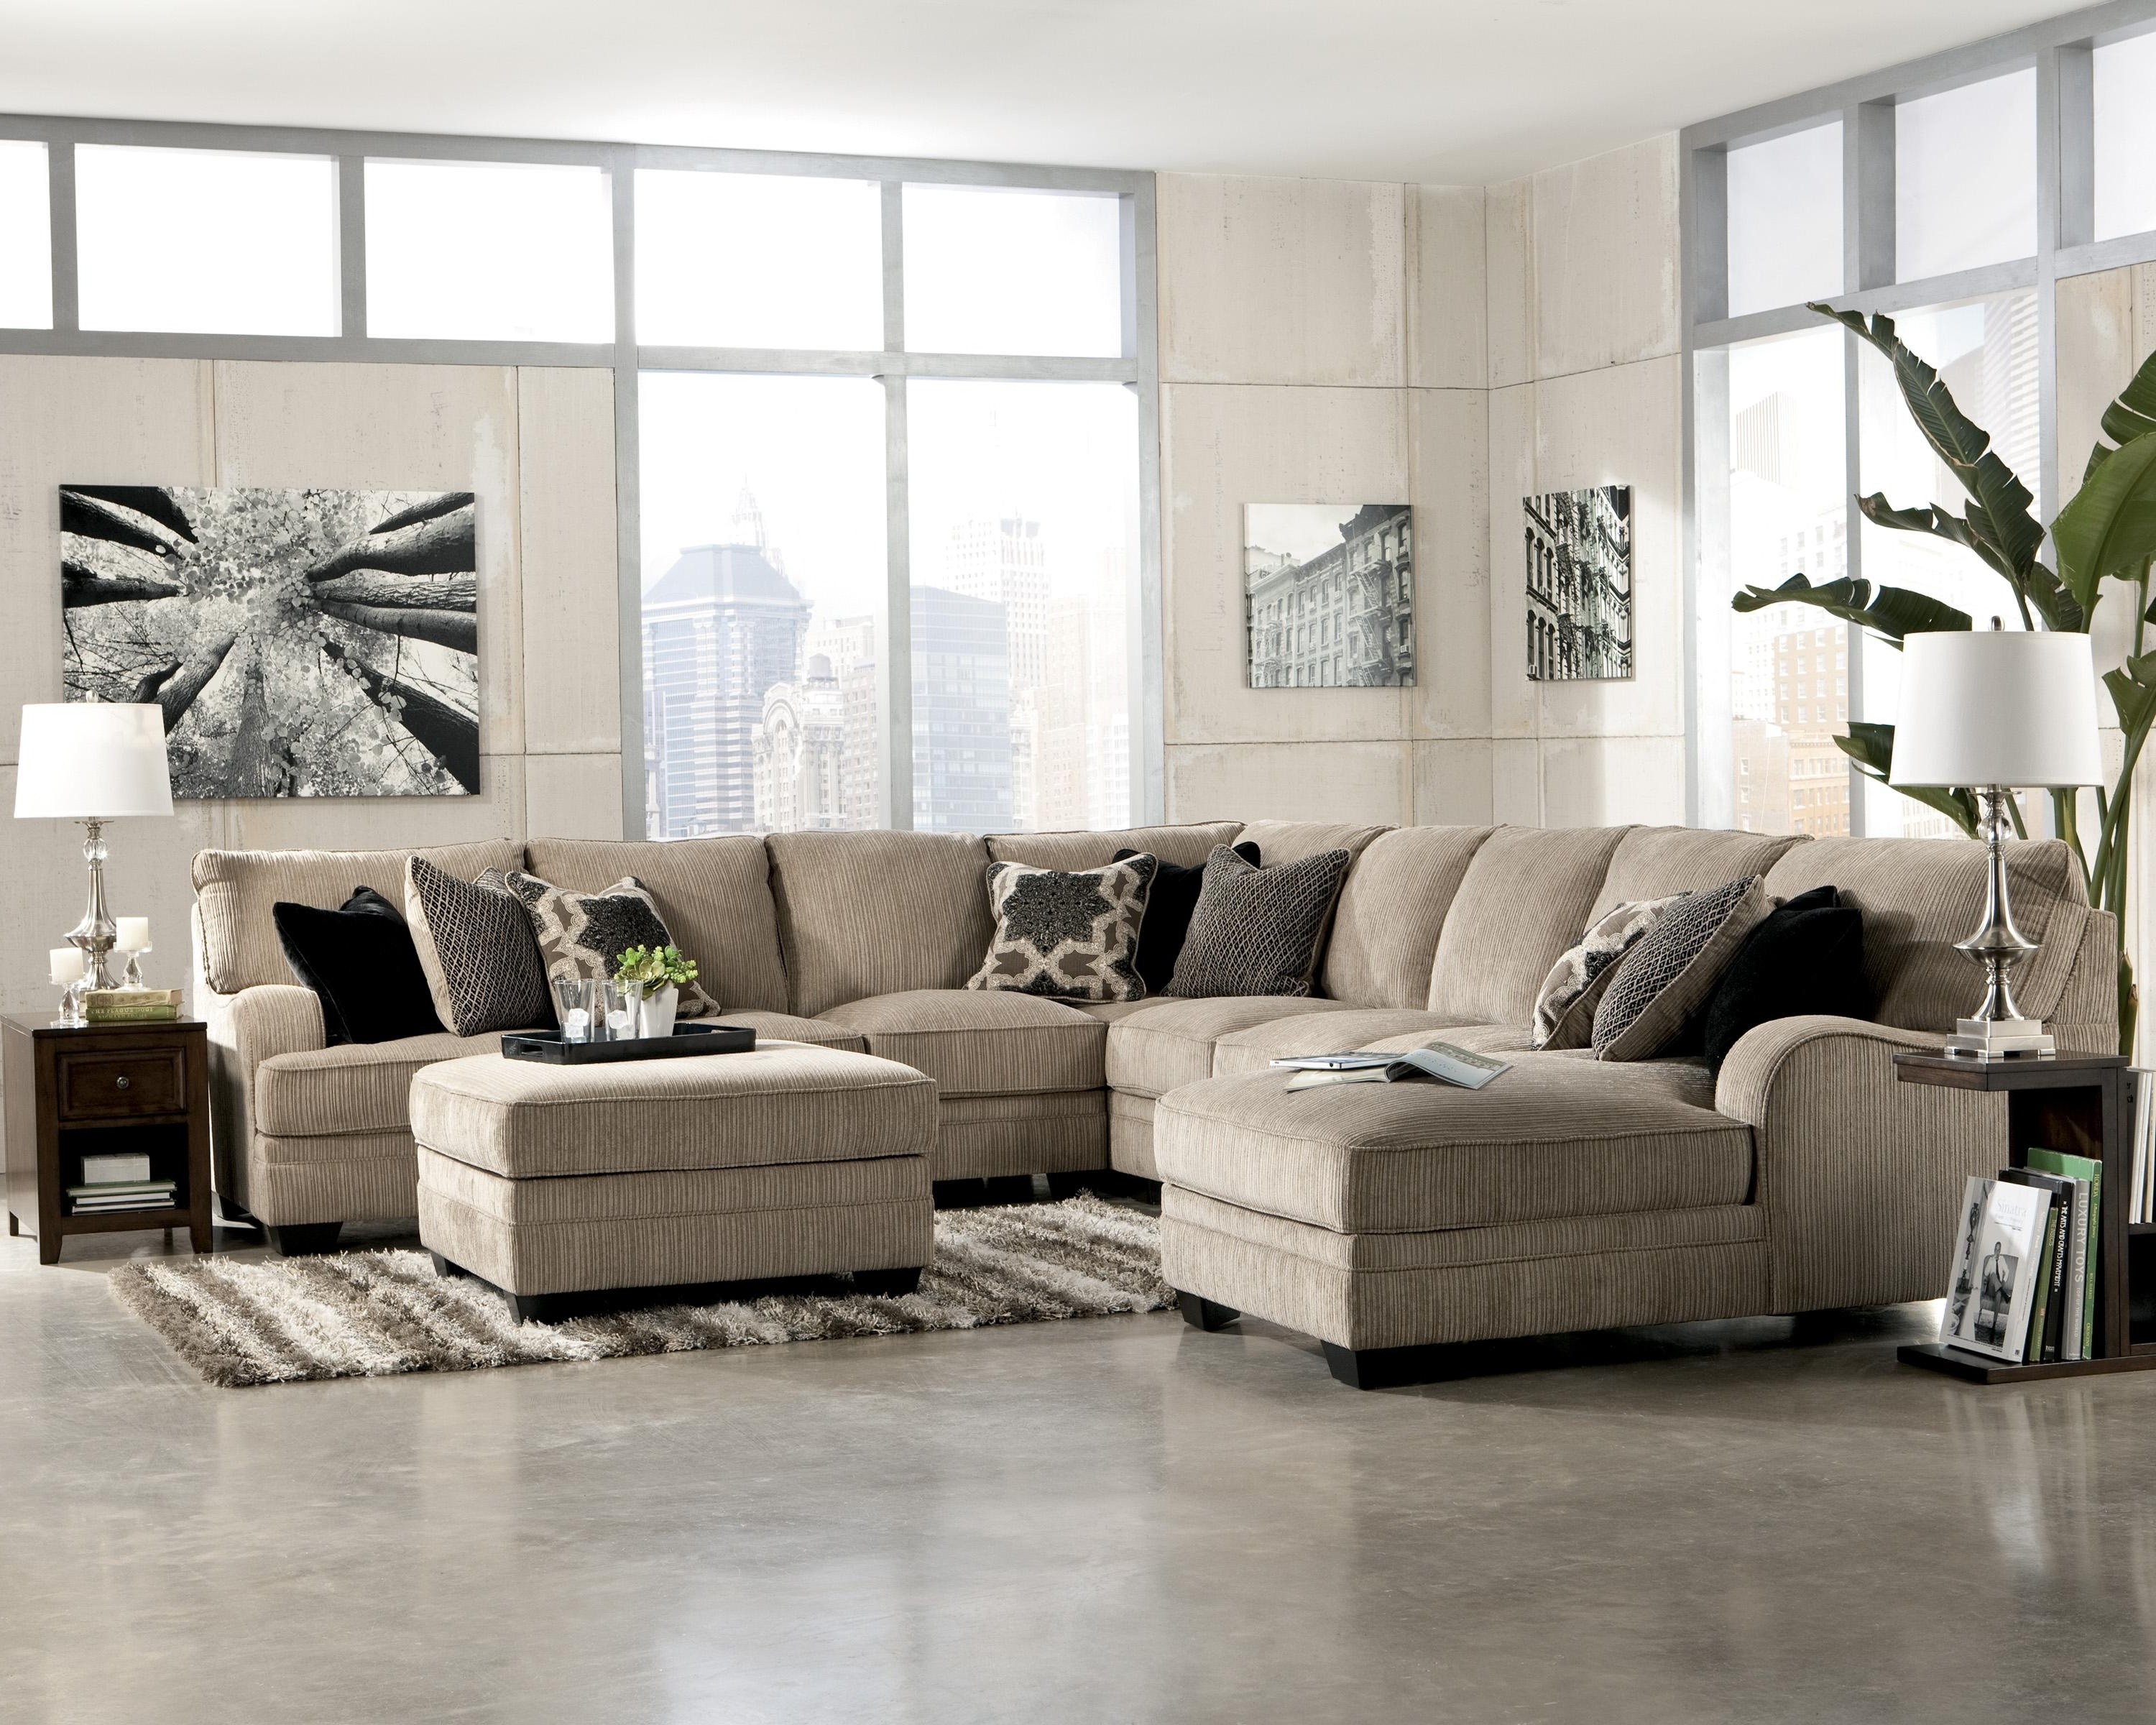 Katisha – Platinum 5 Piece Sectional Sofa With Left Chaise Pertaining To Most Current Jackson Ms Sectional Sofas (Gallery 3 of 15)